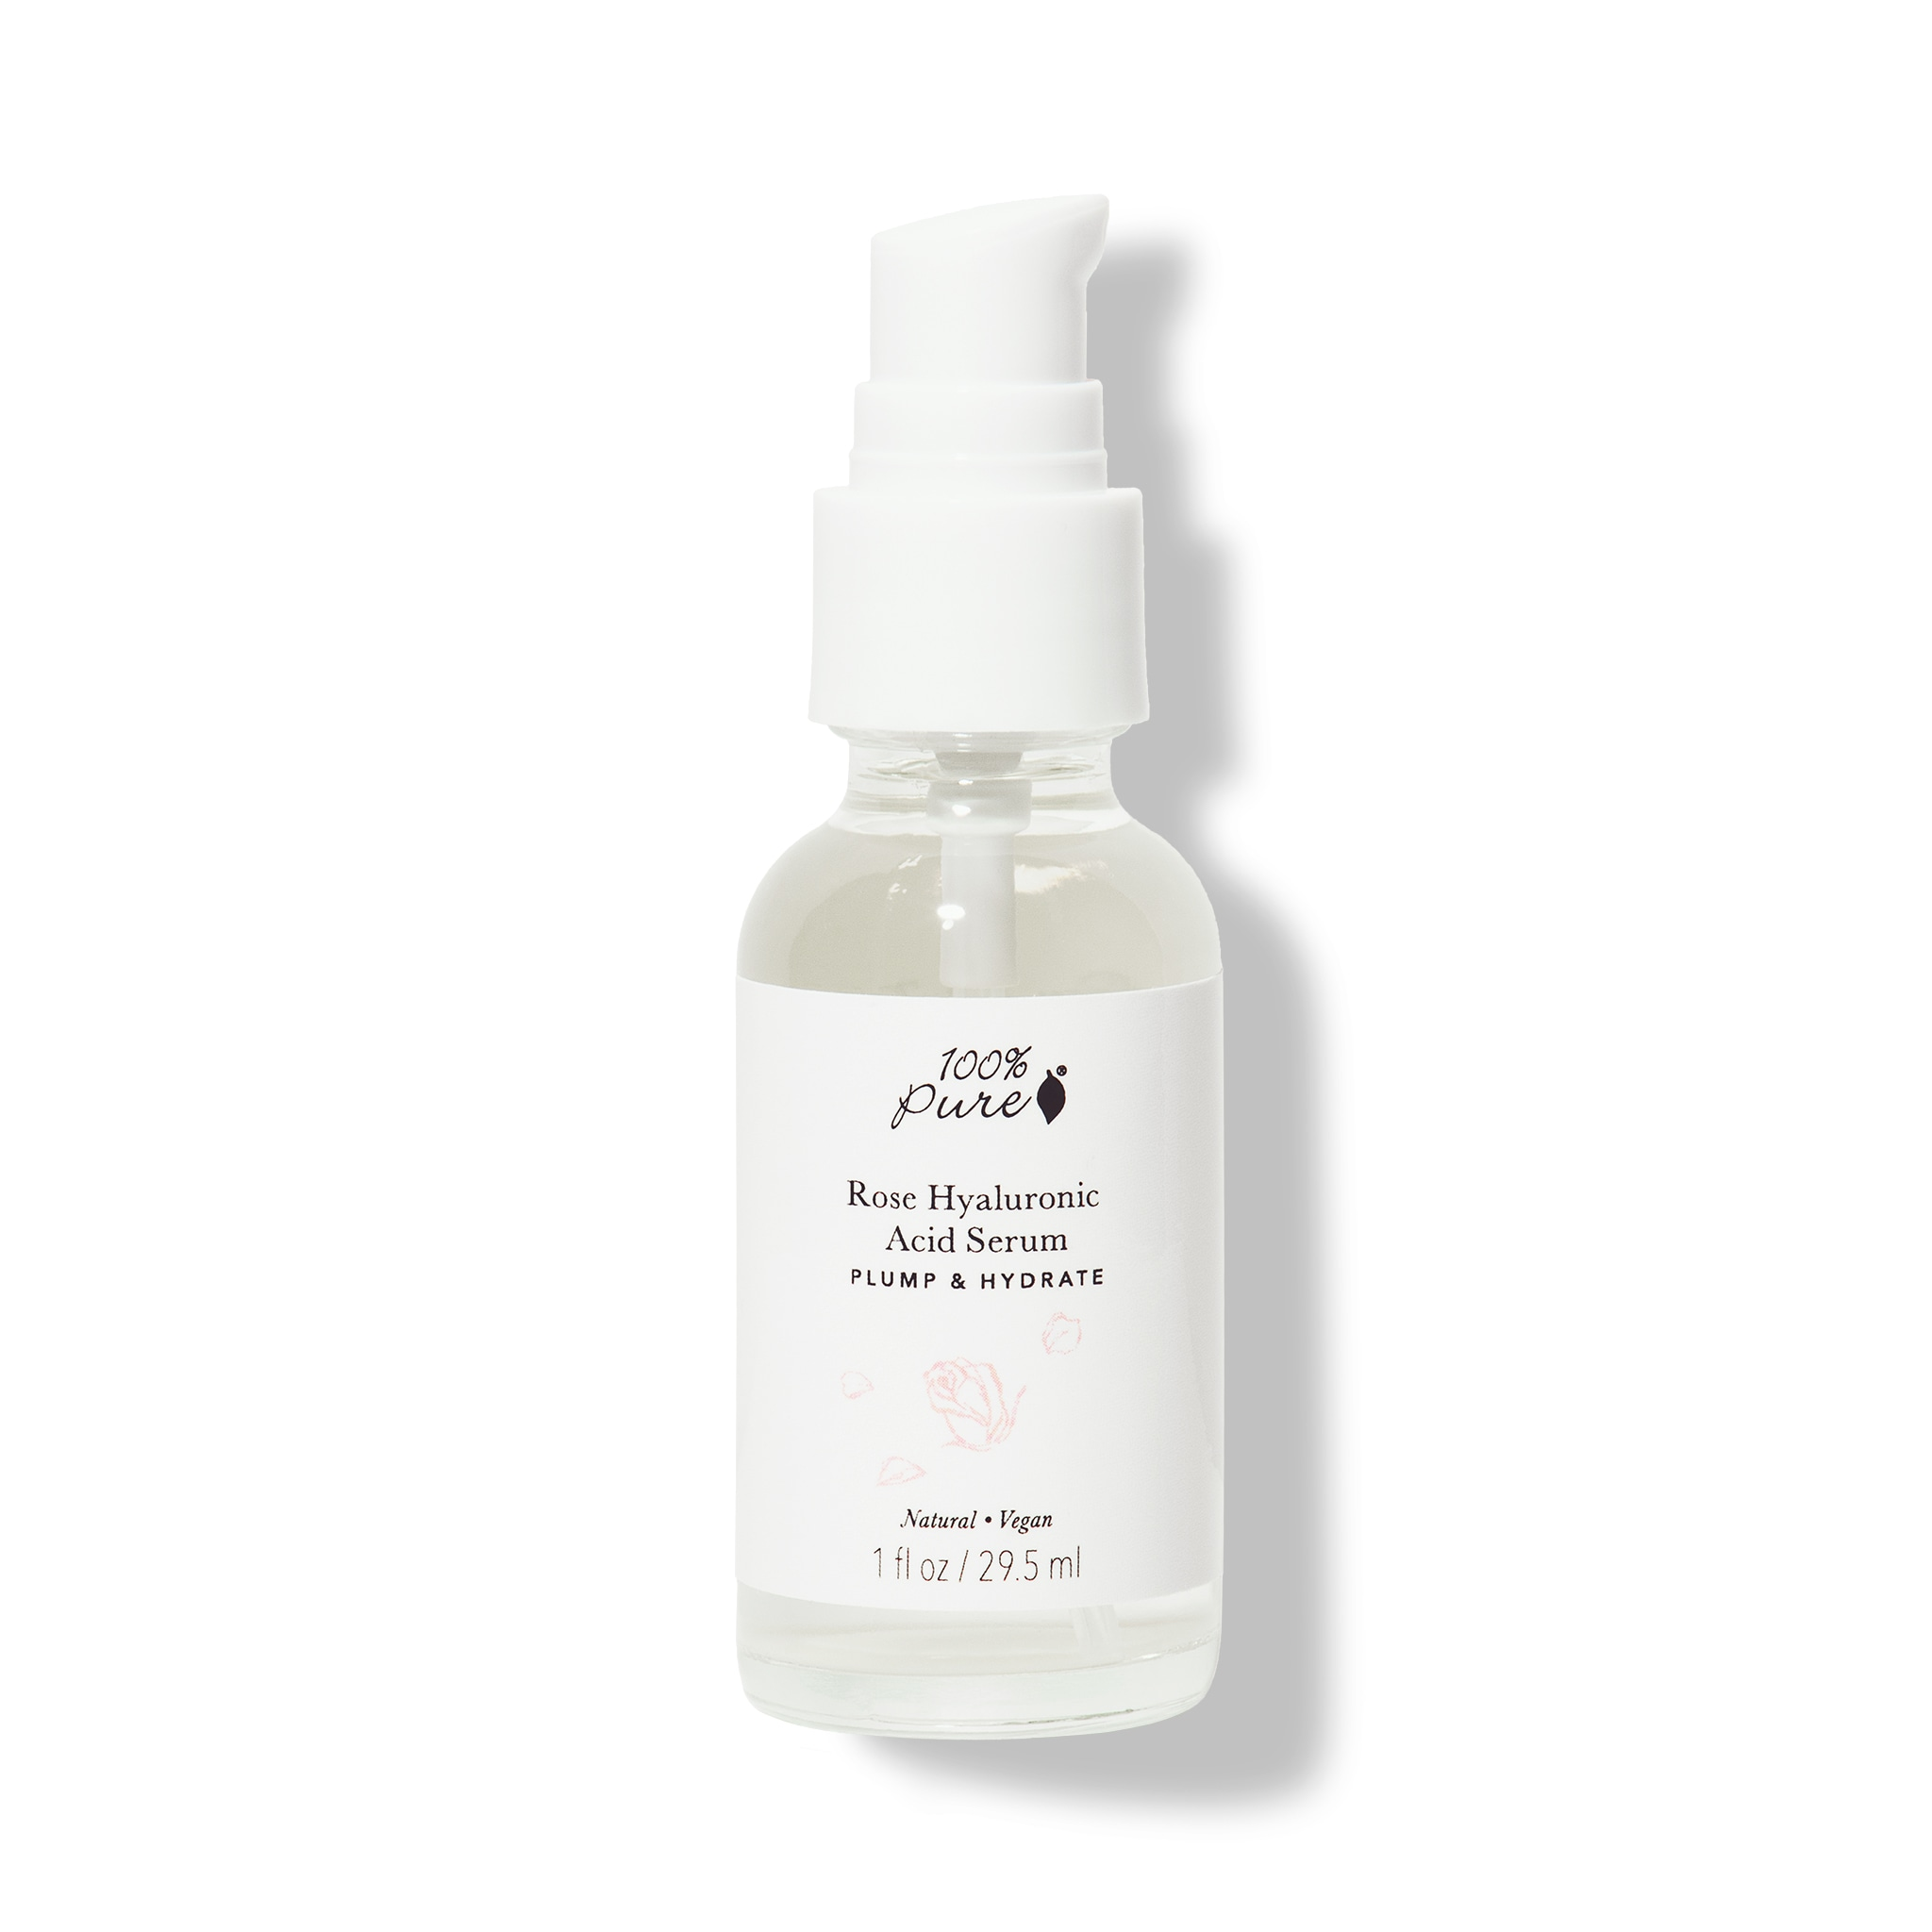 Product Grid - Rose Hyaluronic Acid Serum